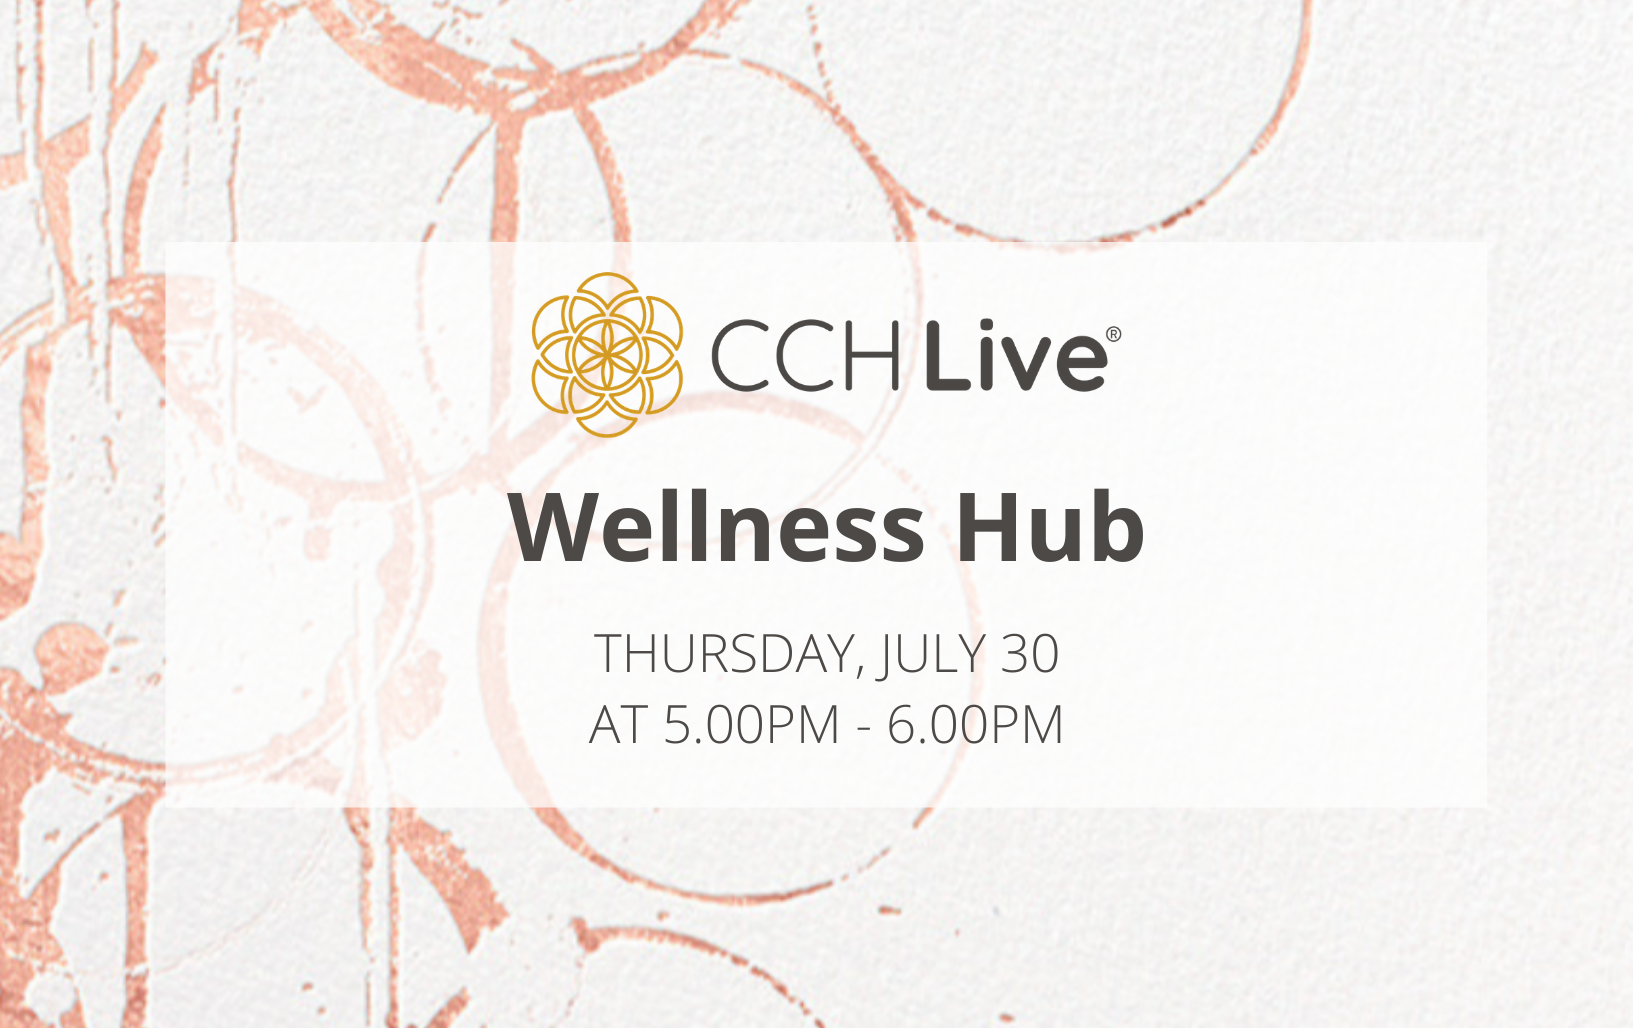 Wellness Hub Invite 30 July 20